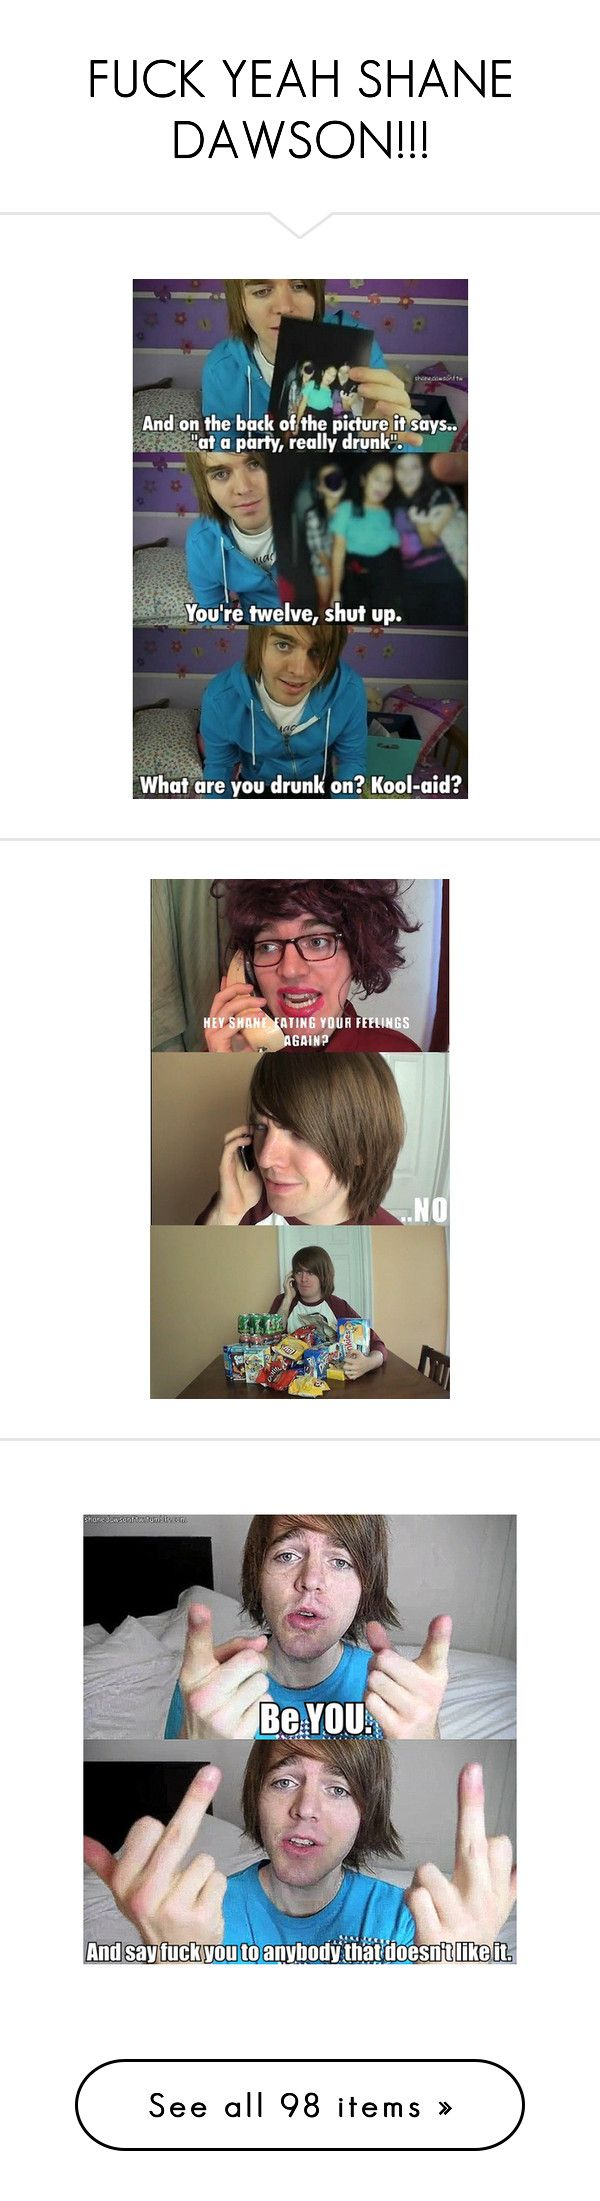 """""""FUCK YEAH SHANE DAWSON!!!"""" by desandnate ❤ liked on Polyvore featuring shane dawson, youtubers, funnies, funny stuff, quotes, phrase, saying, text, funny e pictures"""